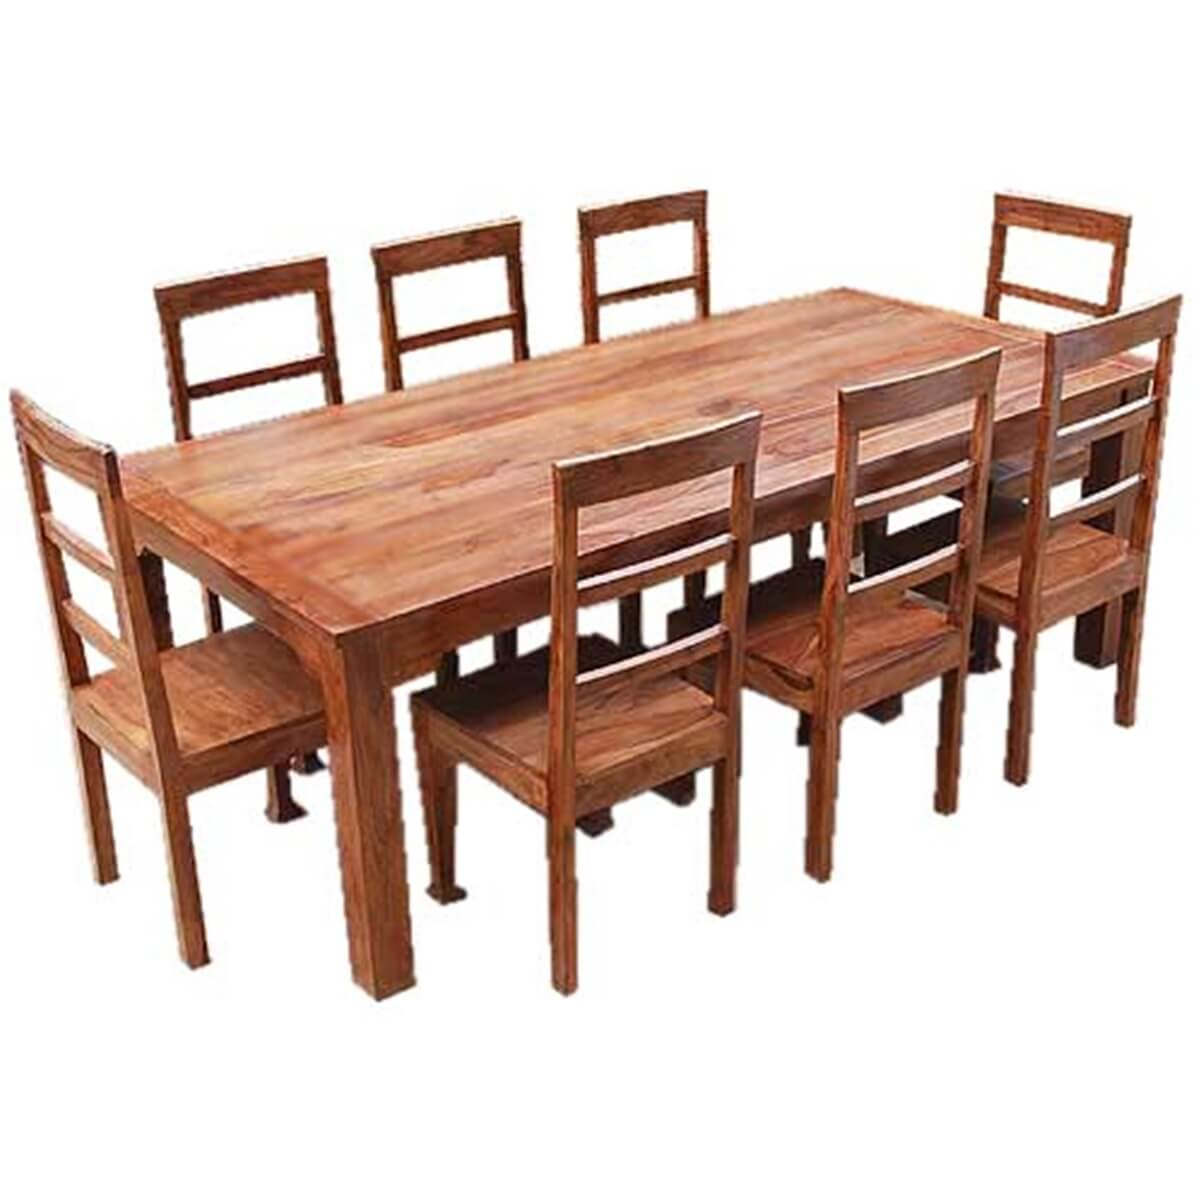 Rustic furniture solid wood dining table chair set for Rustic furniture